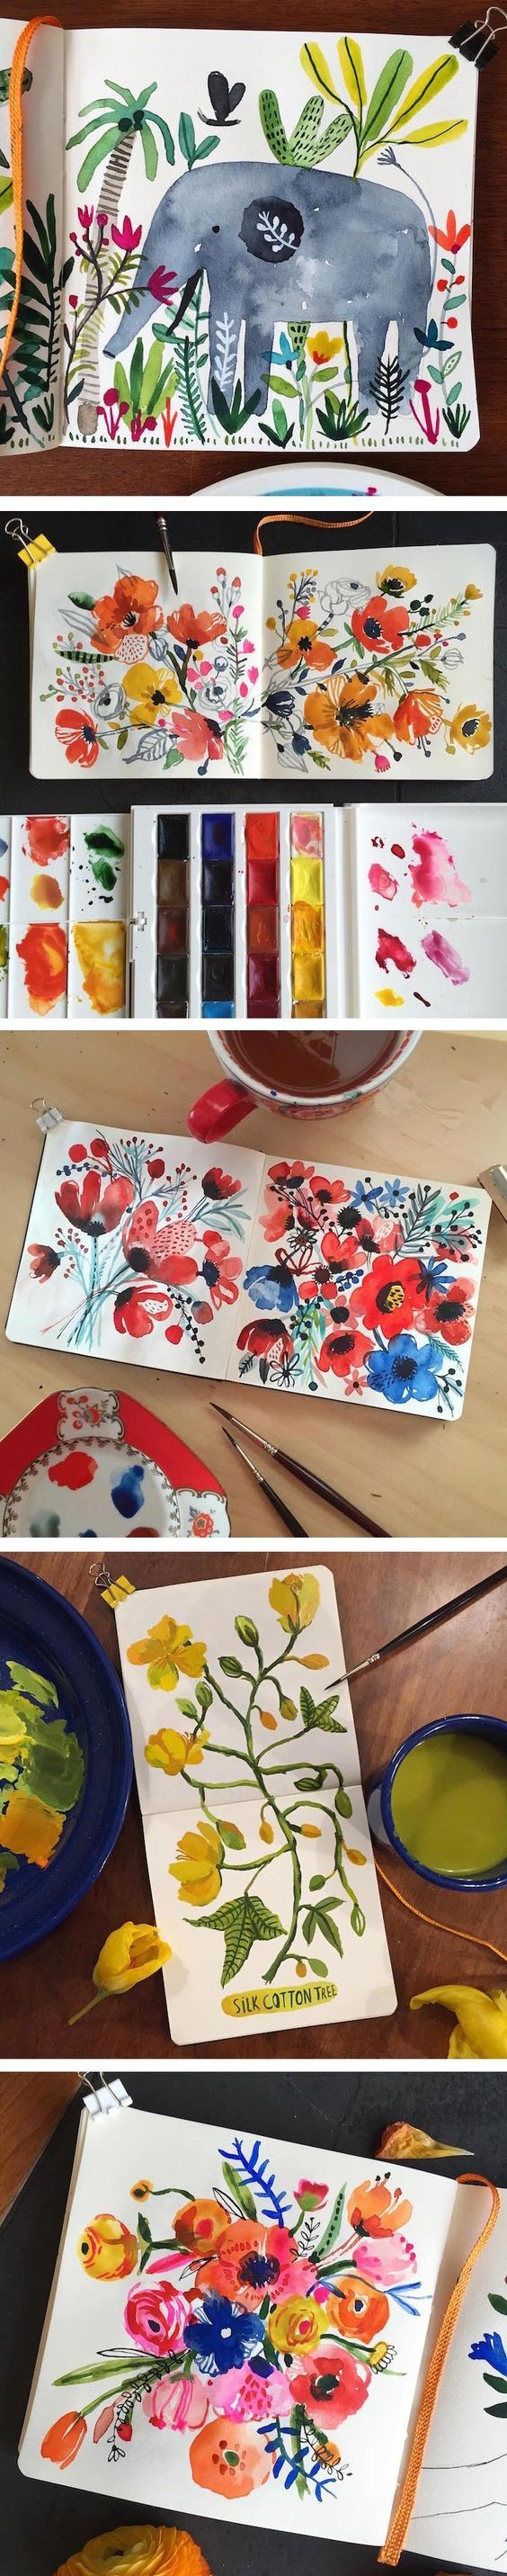 Illustrator Carolyn Gavin creates vibrant sketchbook paintings of animals and beautiful blooms, crafted with the carefree fluidity of watercolor.